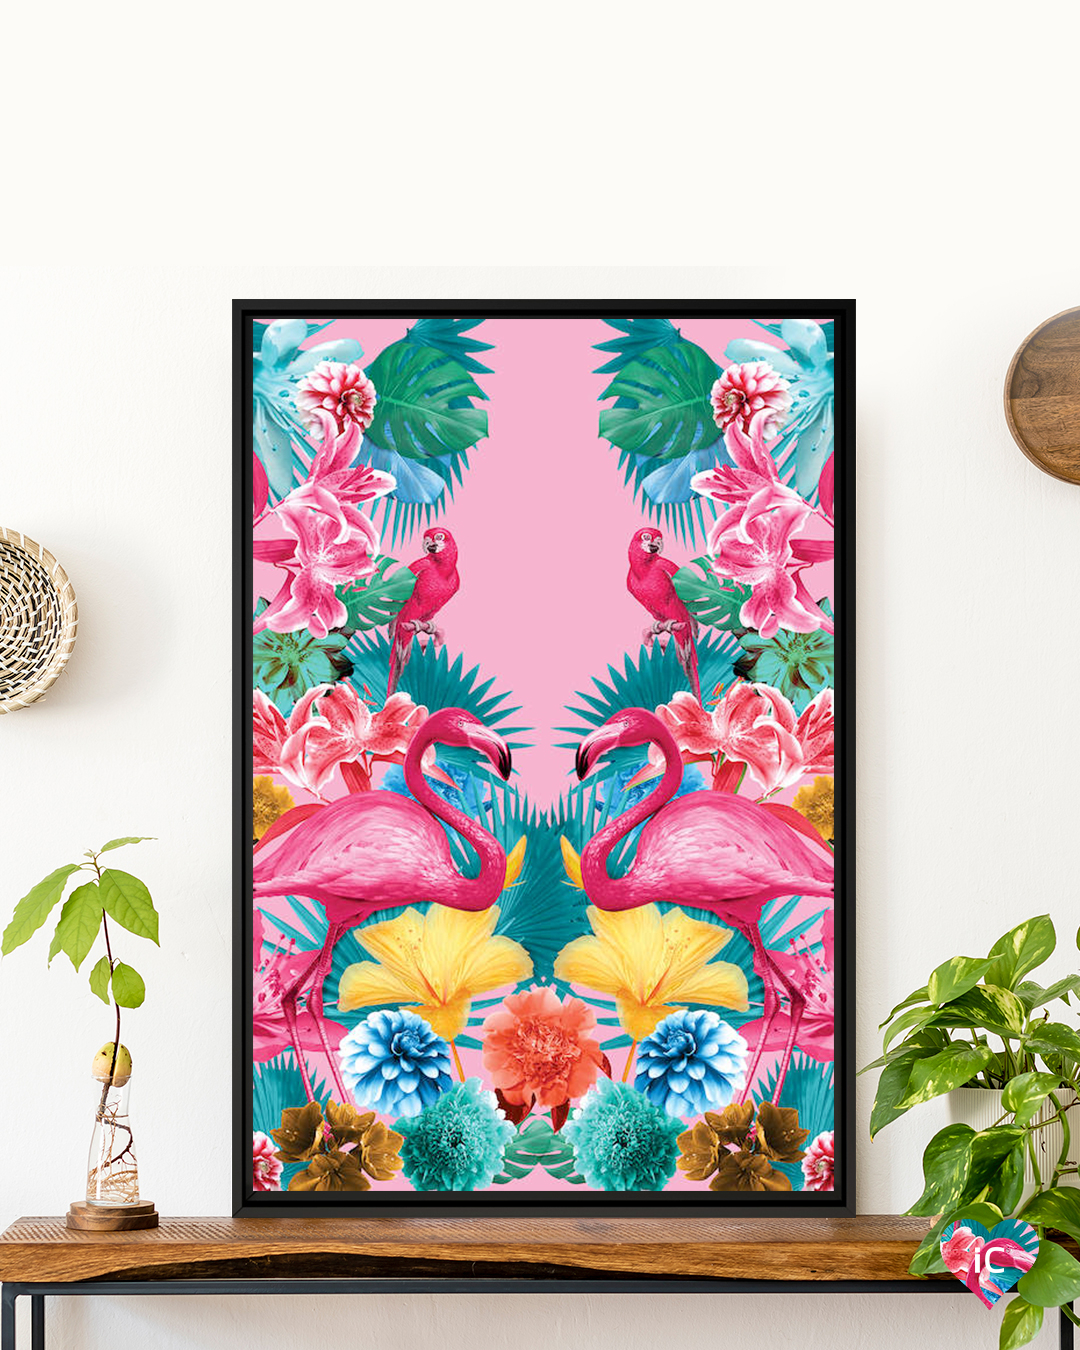 a bright pink symmetrical print featuring flowers, flamingos, and parrots